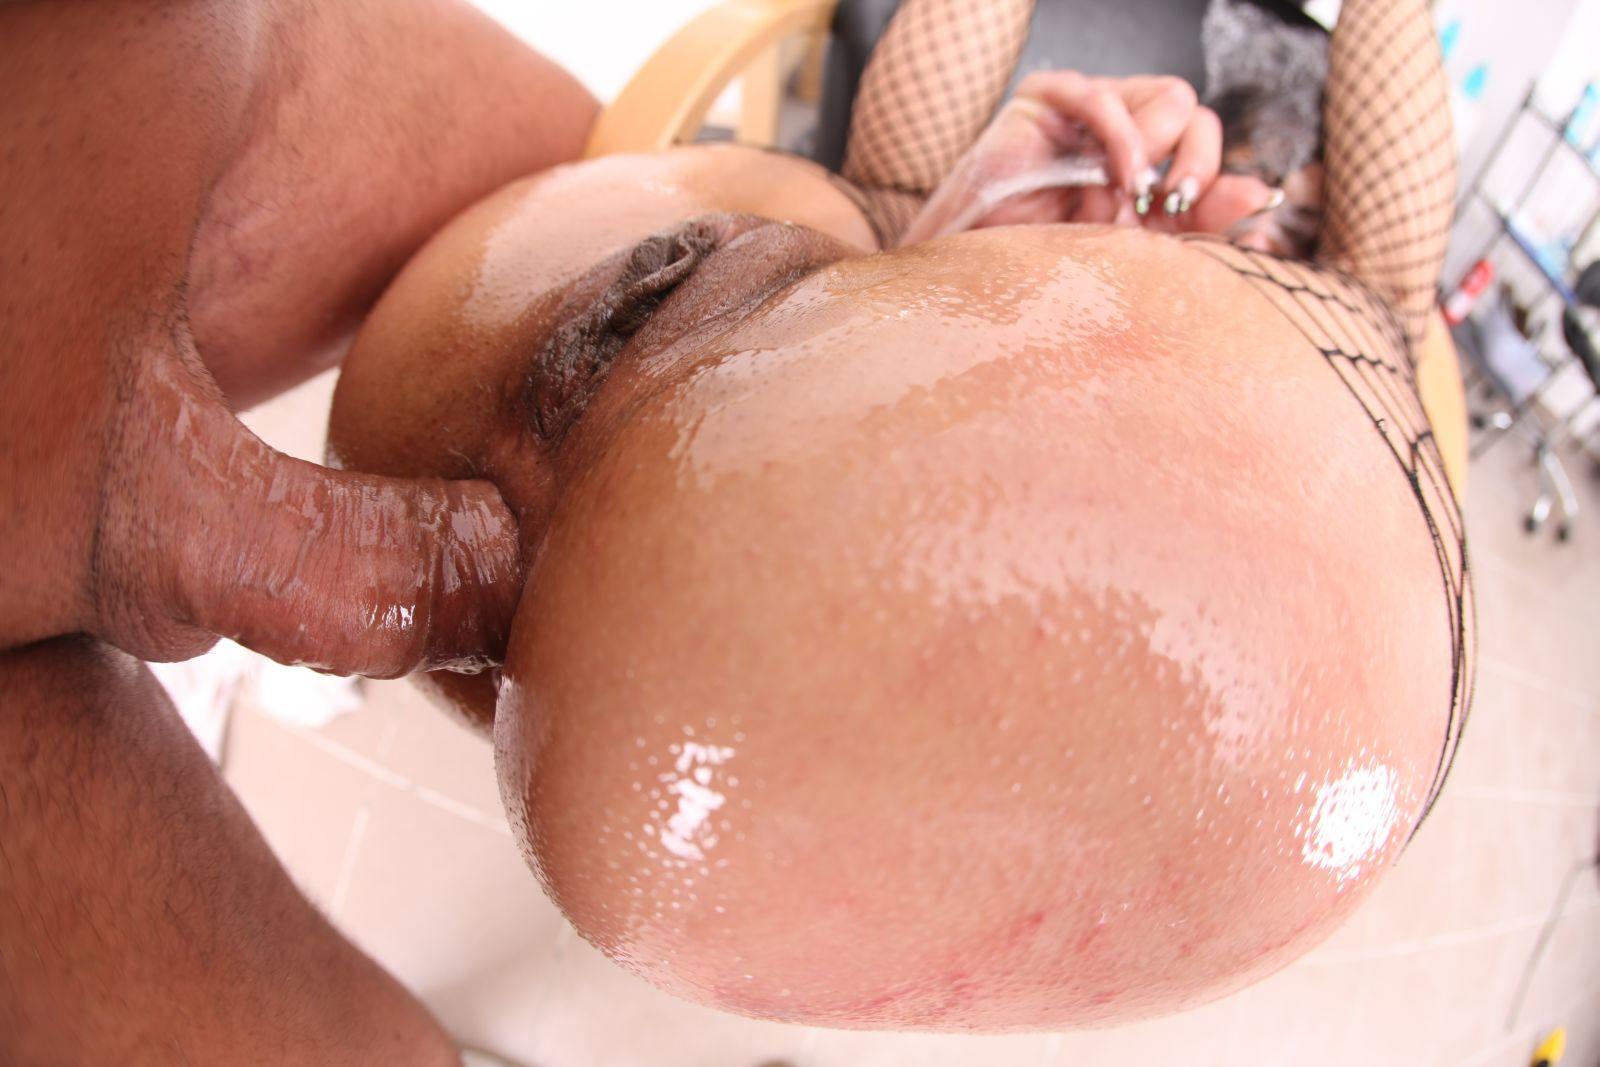 idea has become boned dirty young cumshot more thecreampiesurprisecom sorry, that